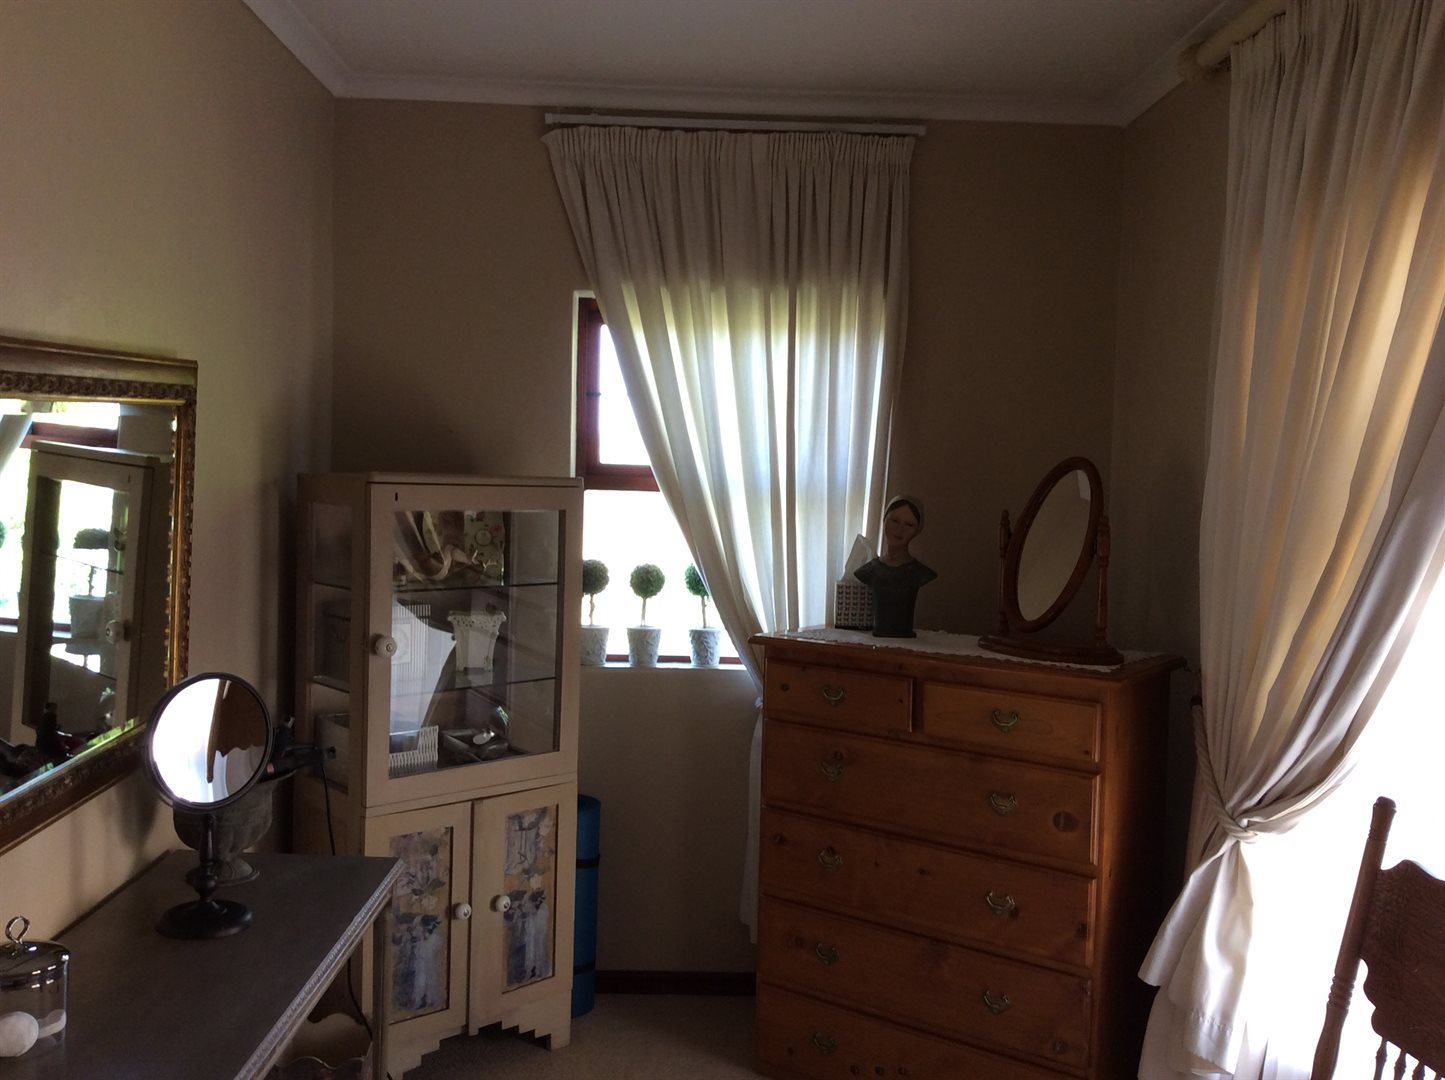 3 Bedroom House for sale in Montana Park ENT0074858 : photo#24